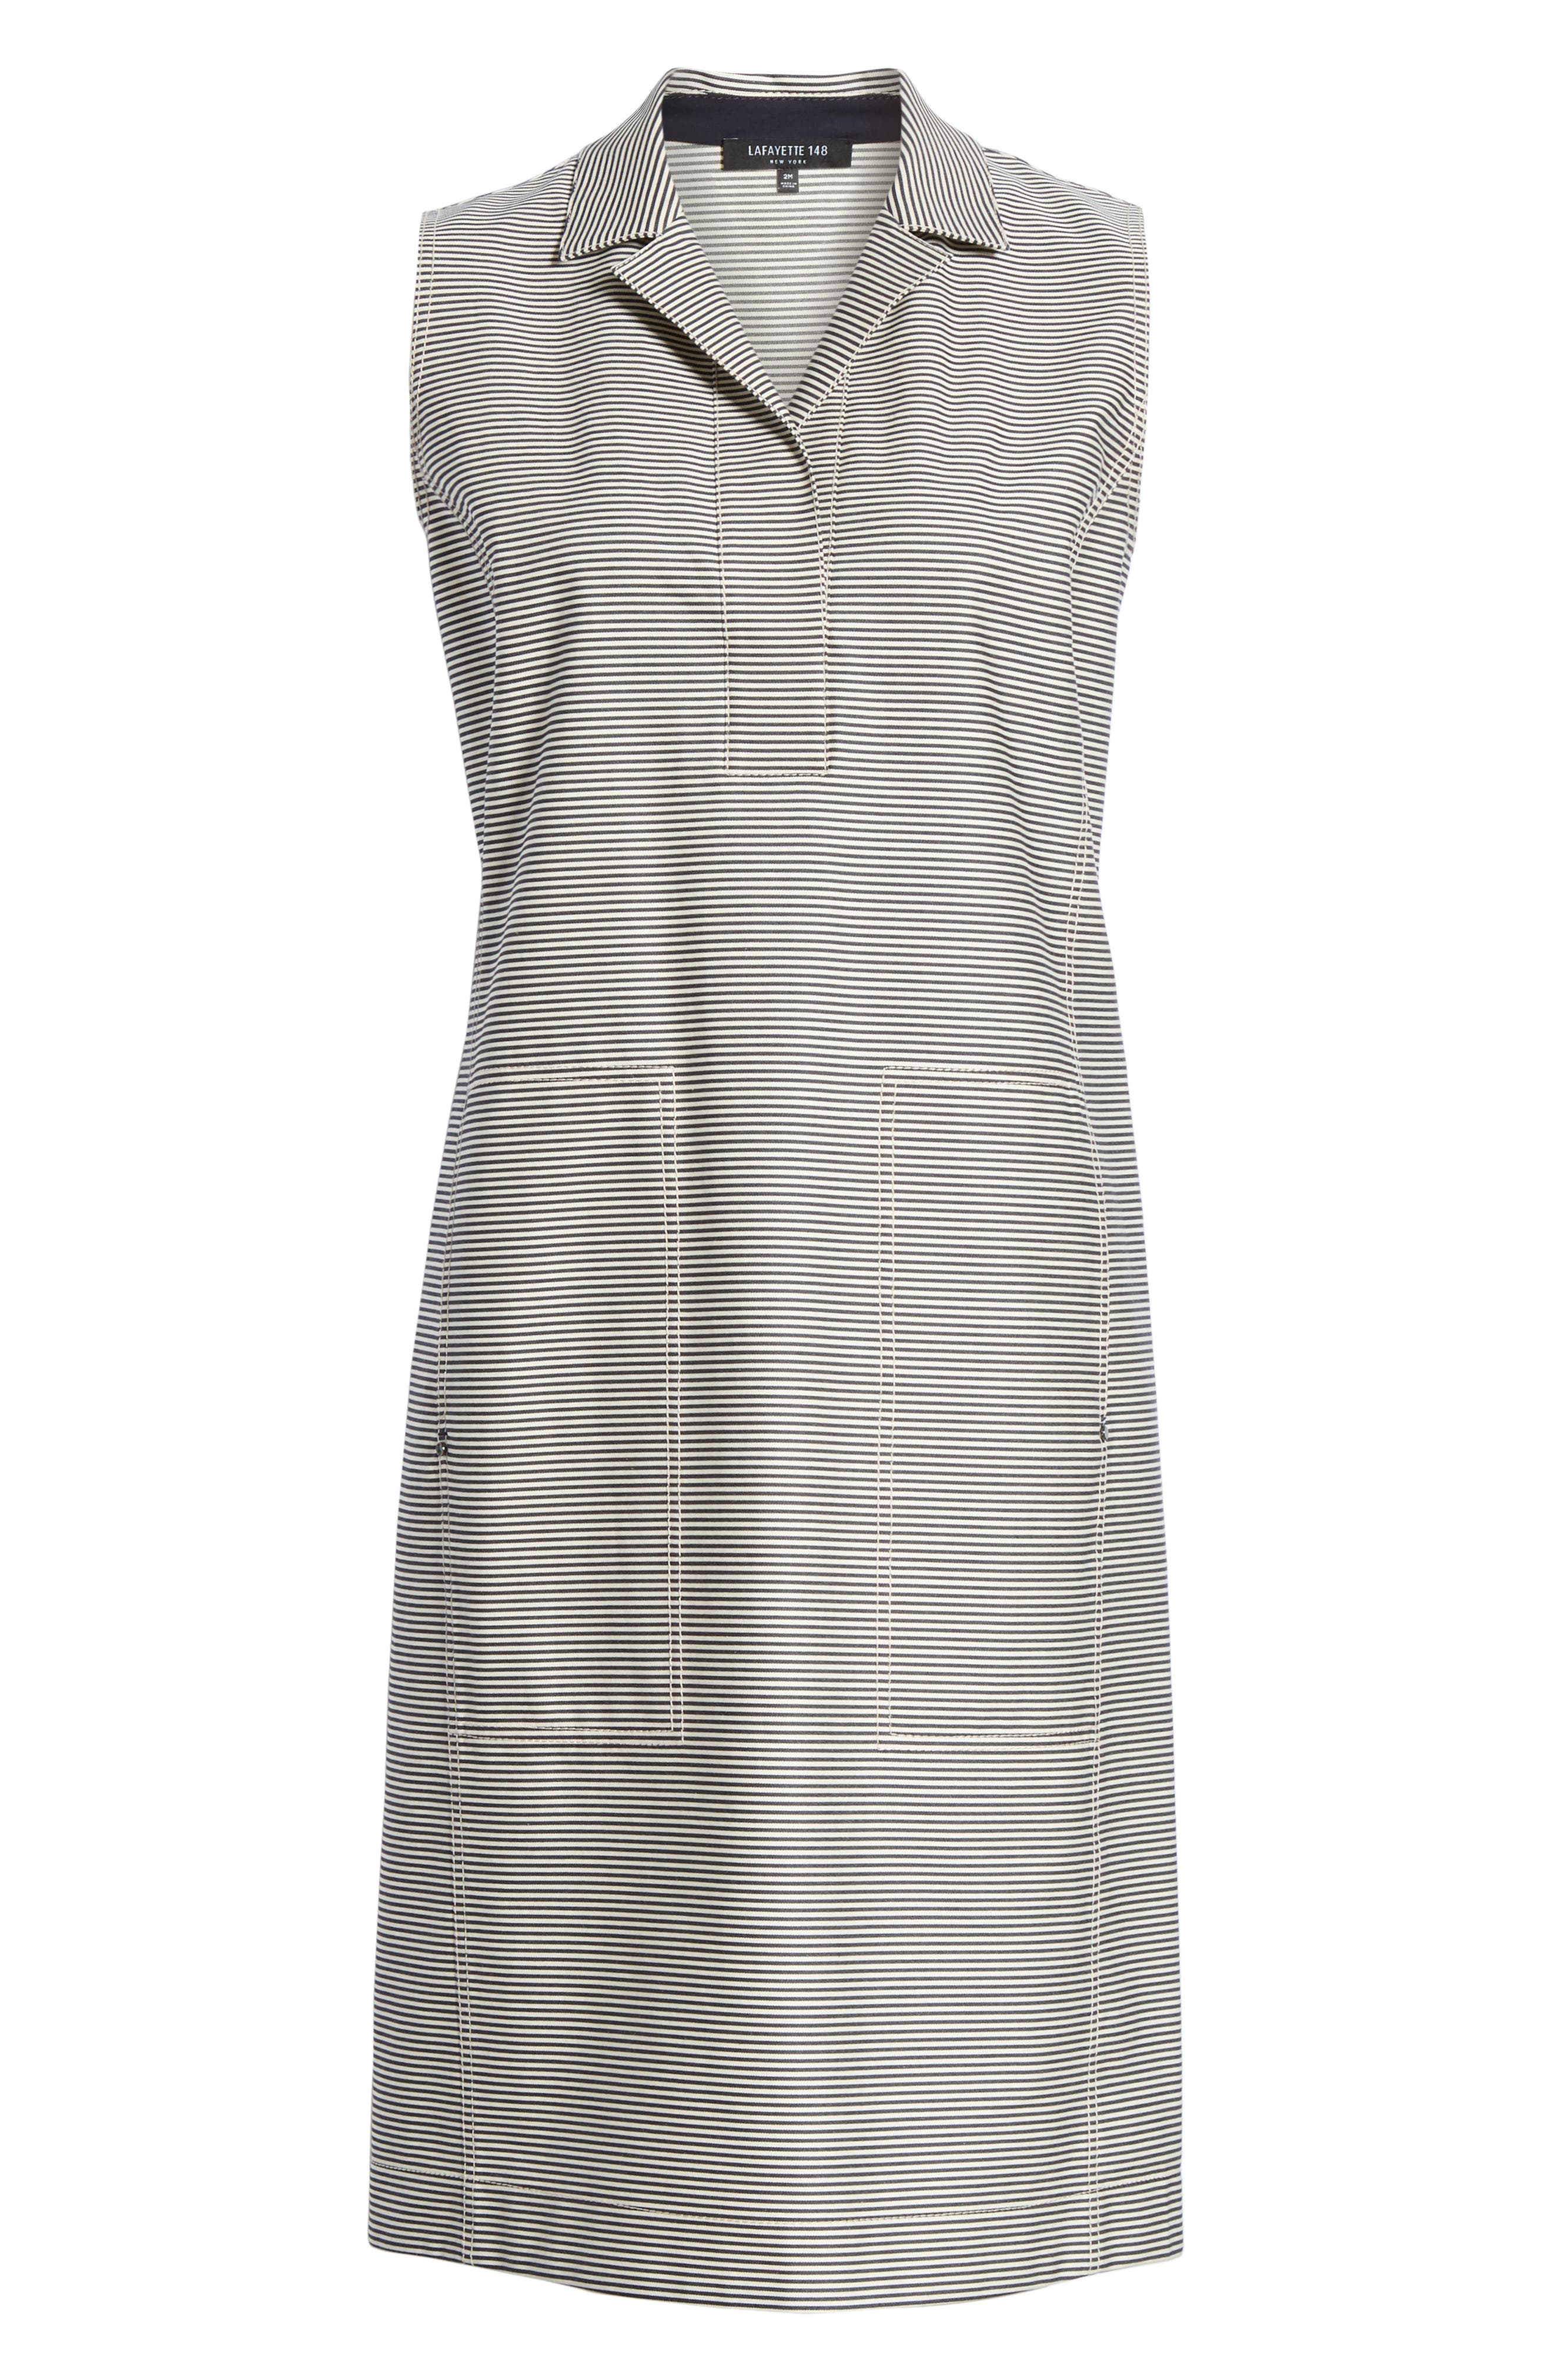 LAFAYETTE 148 NEW YORK, Rudy Stripe Shift Dress, Alternate thumbnail 6, color, INK MULTI